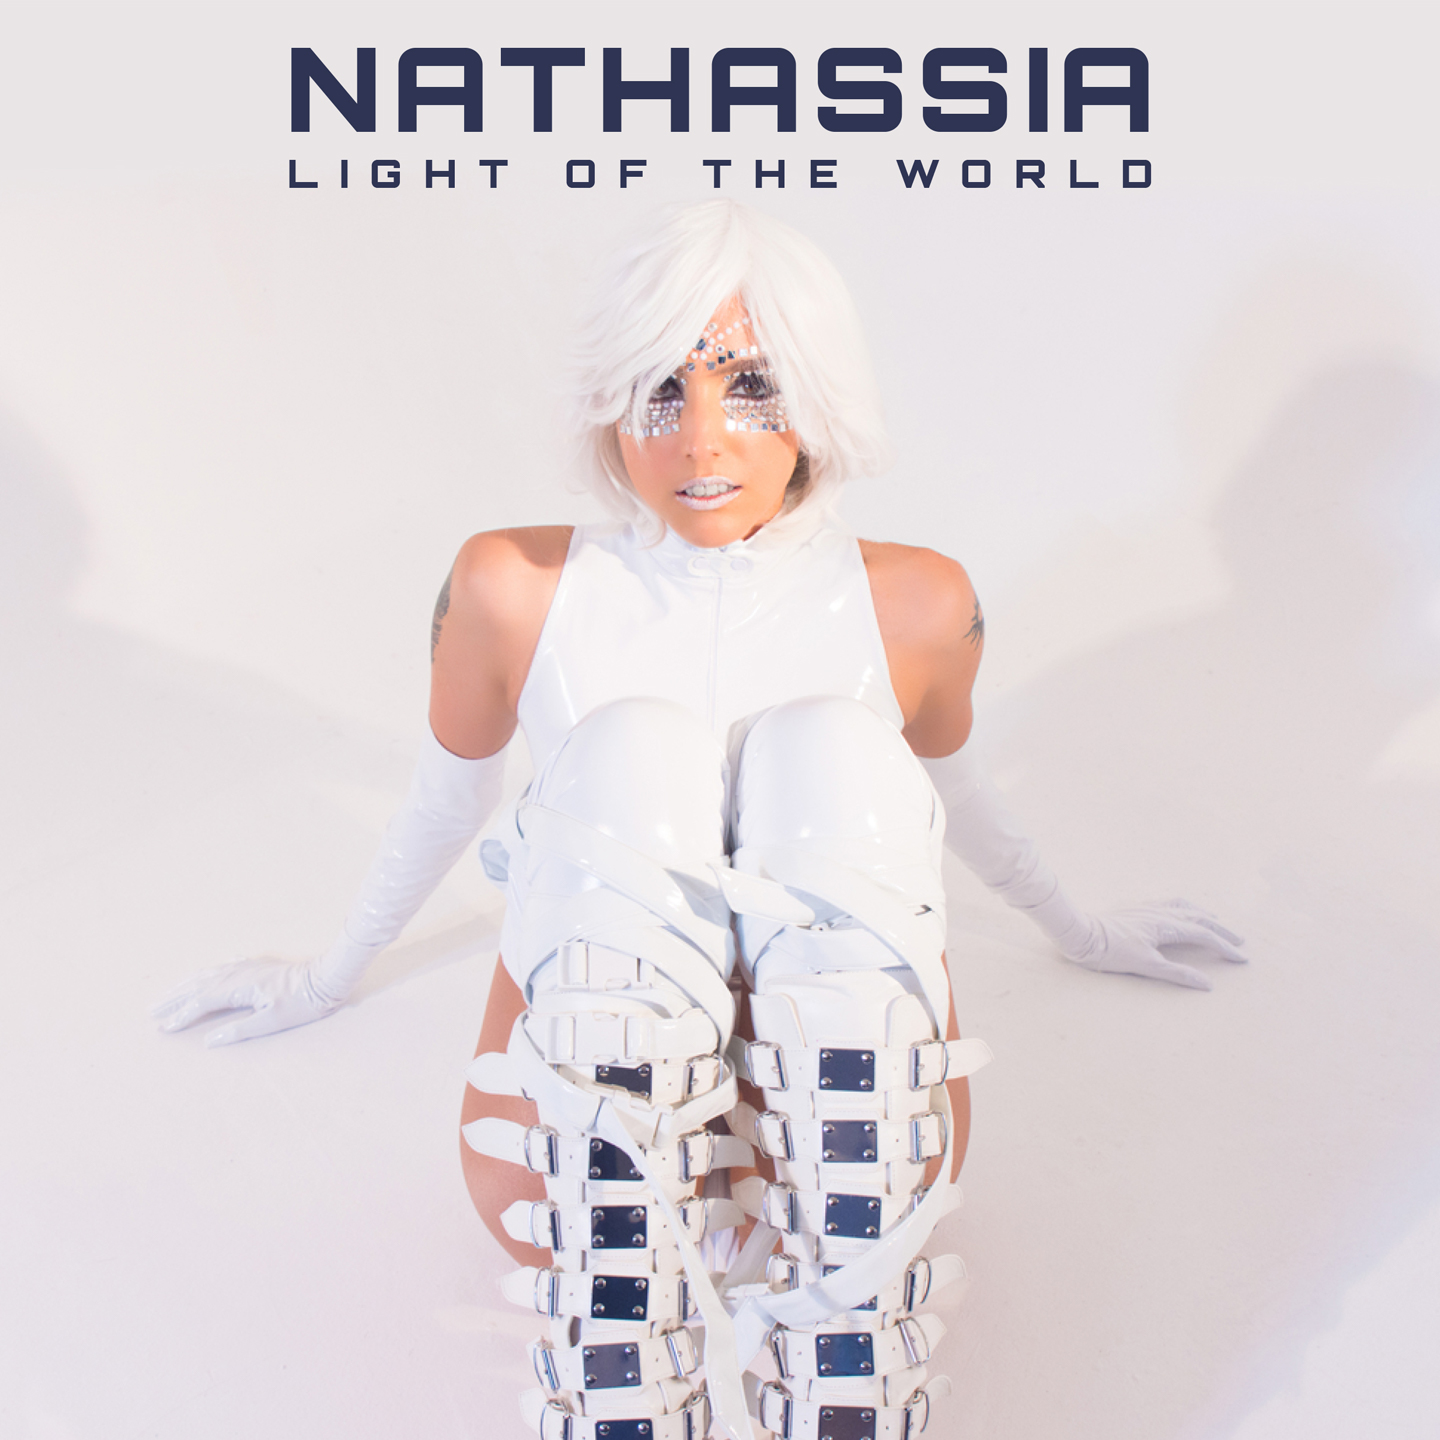 Light Of The World - Nathassia iTunes Album Artwork